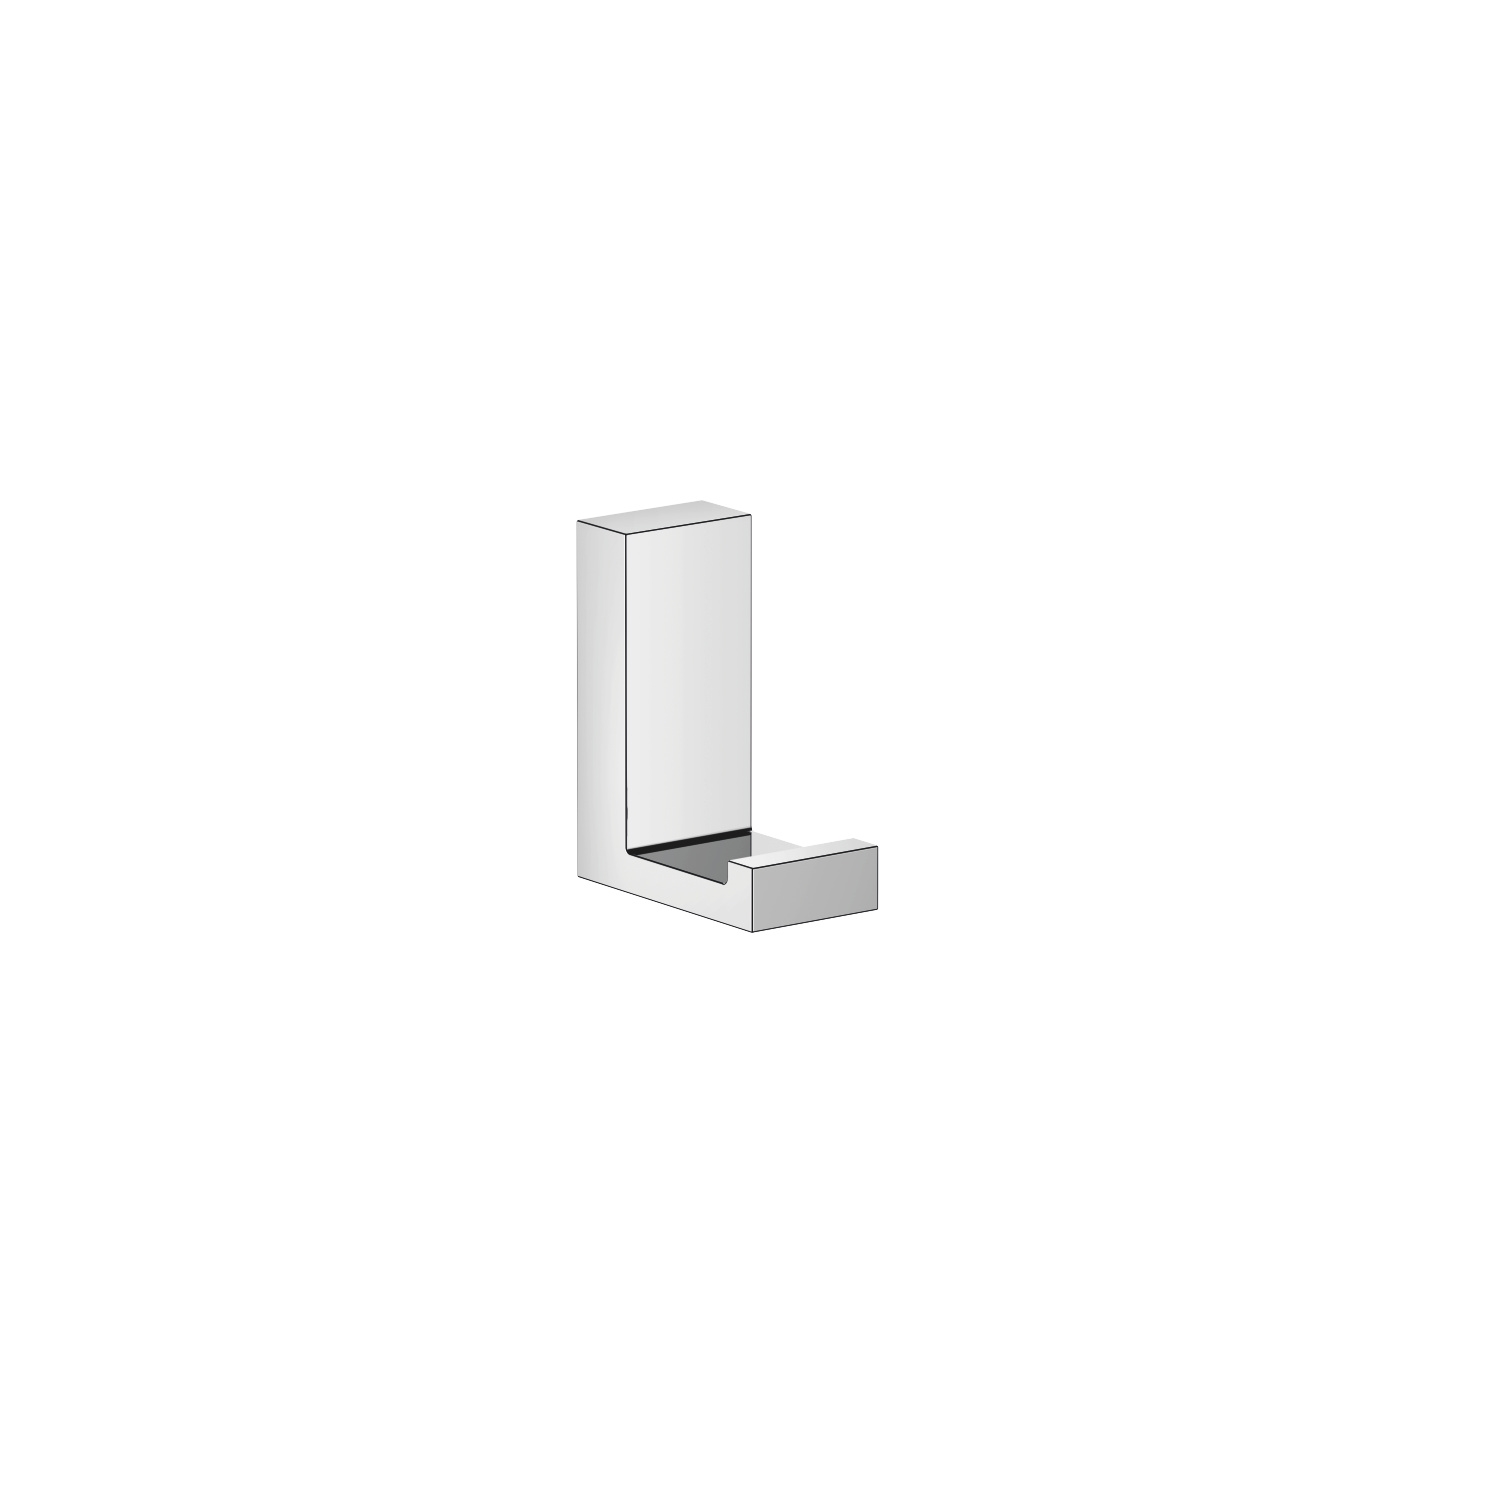 Hook - polished chrome 83 251 780-00 Dornbracht